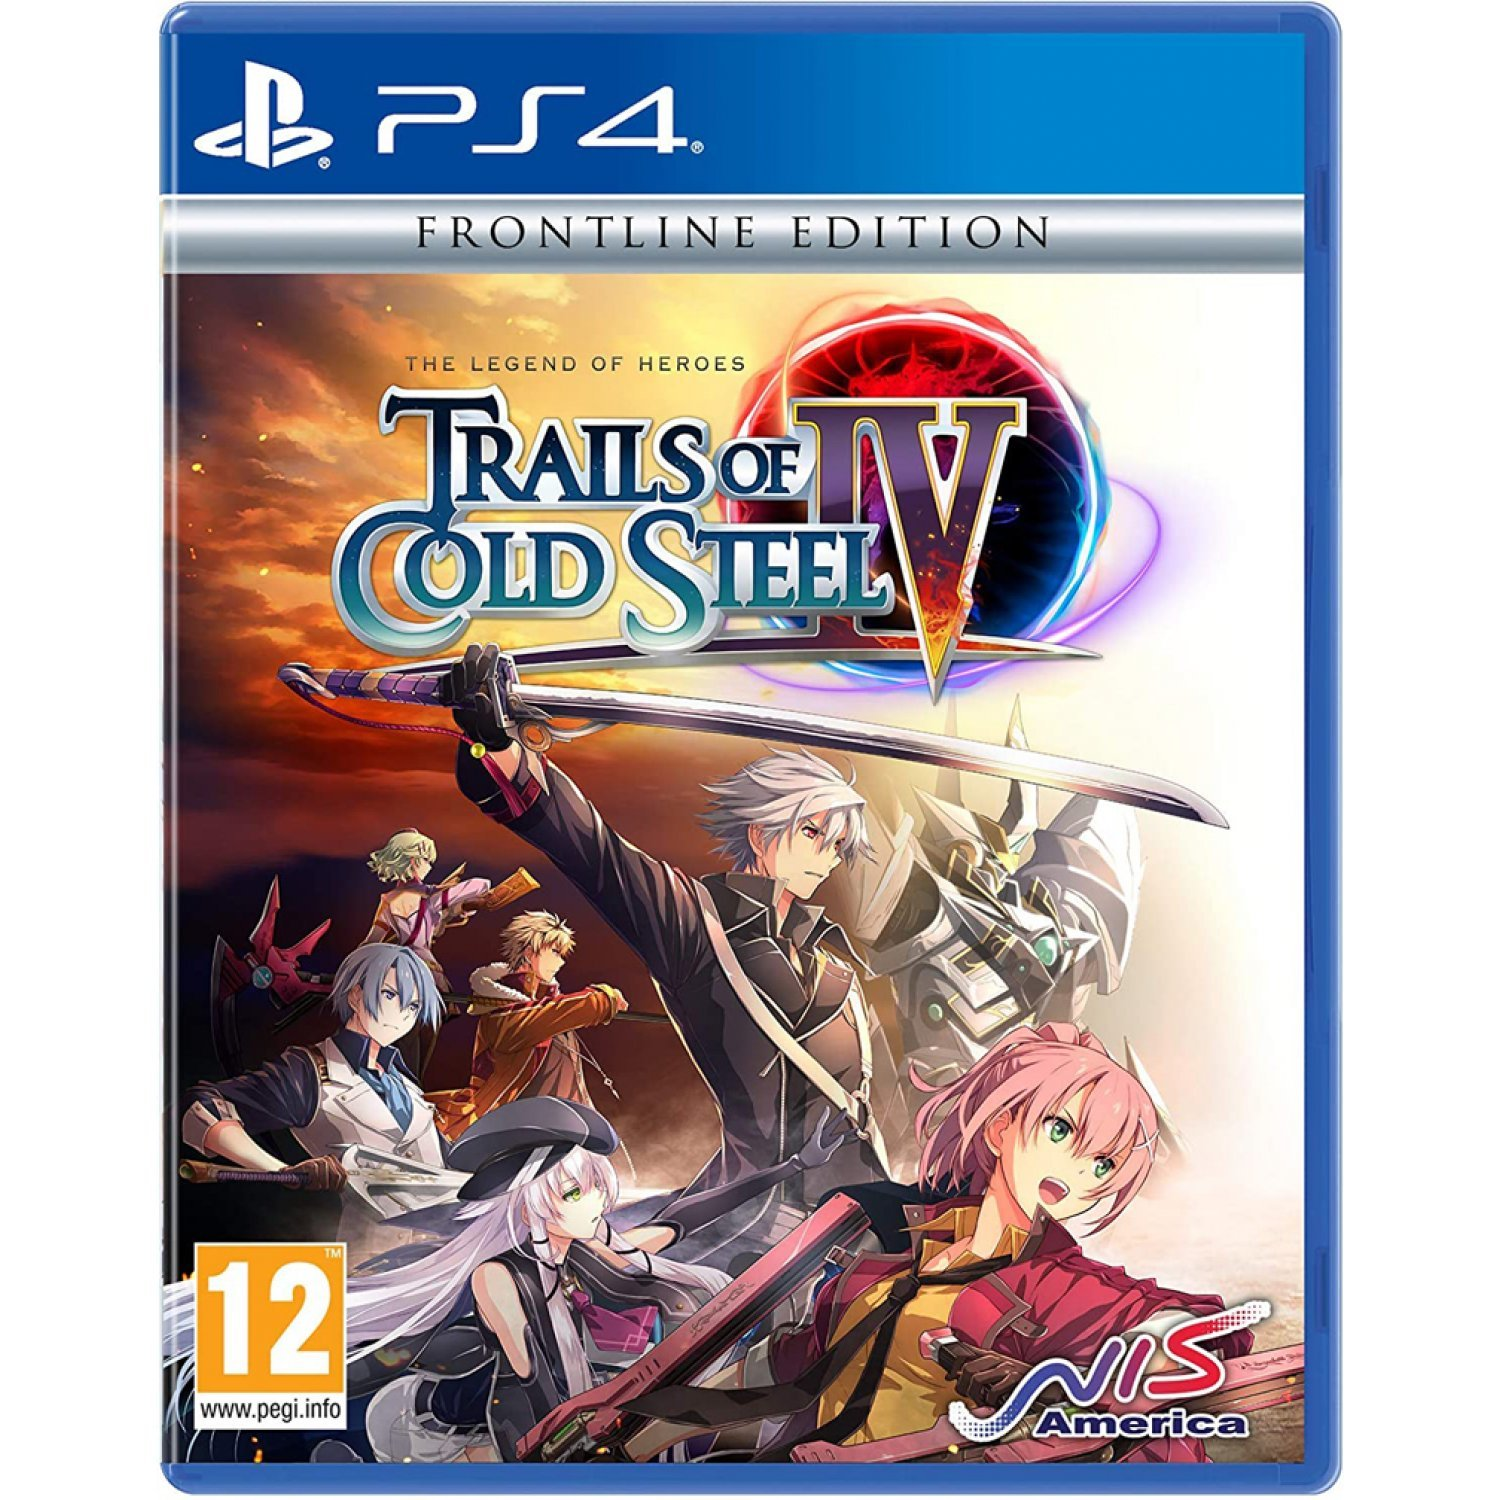 the-legend-of-heroes-trails-of-cold-steel-iv-frontline-edition-626037.13.jpg